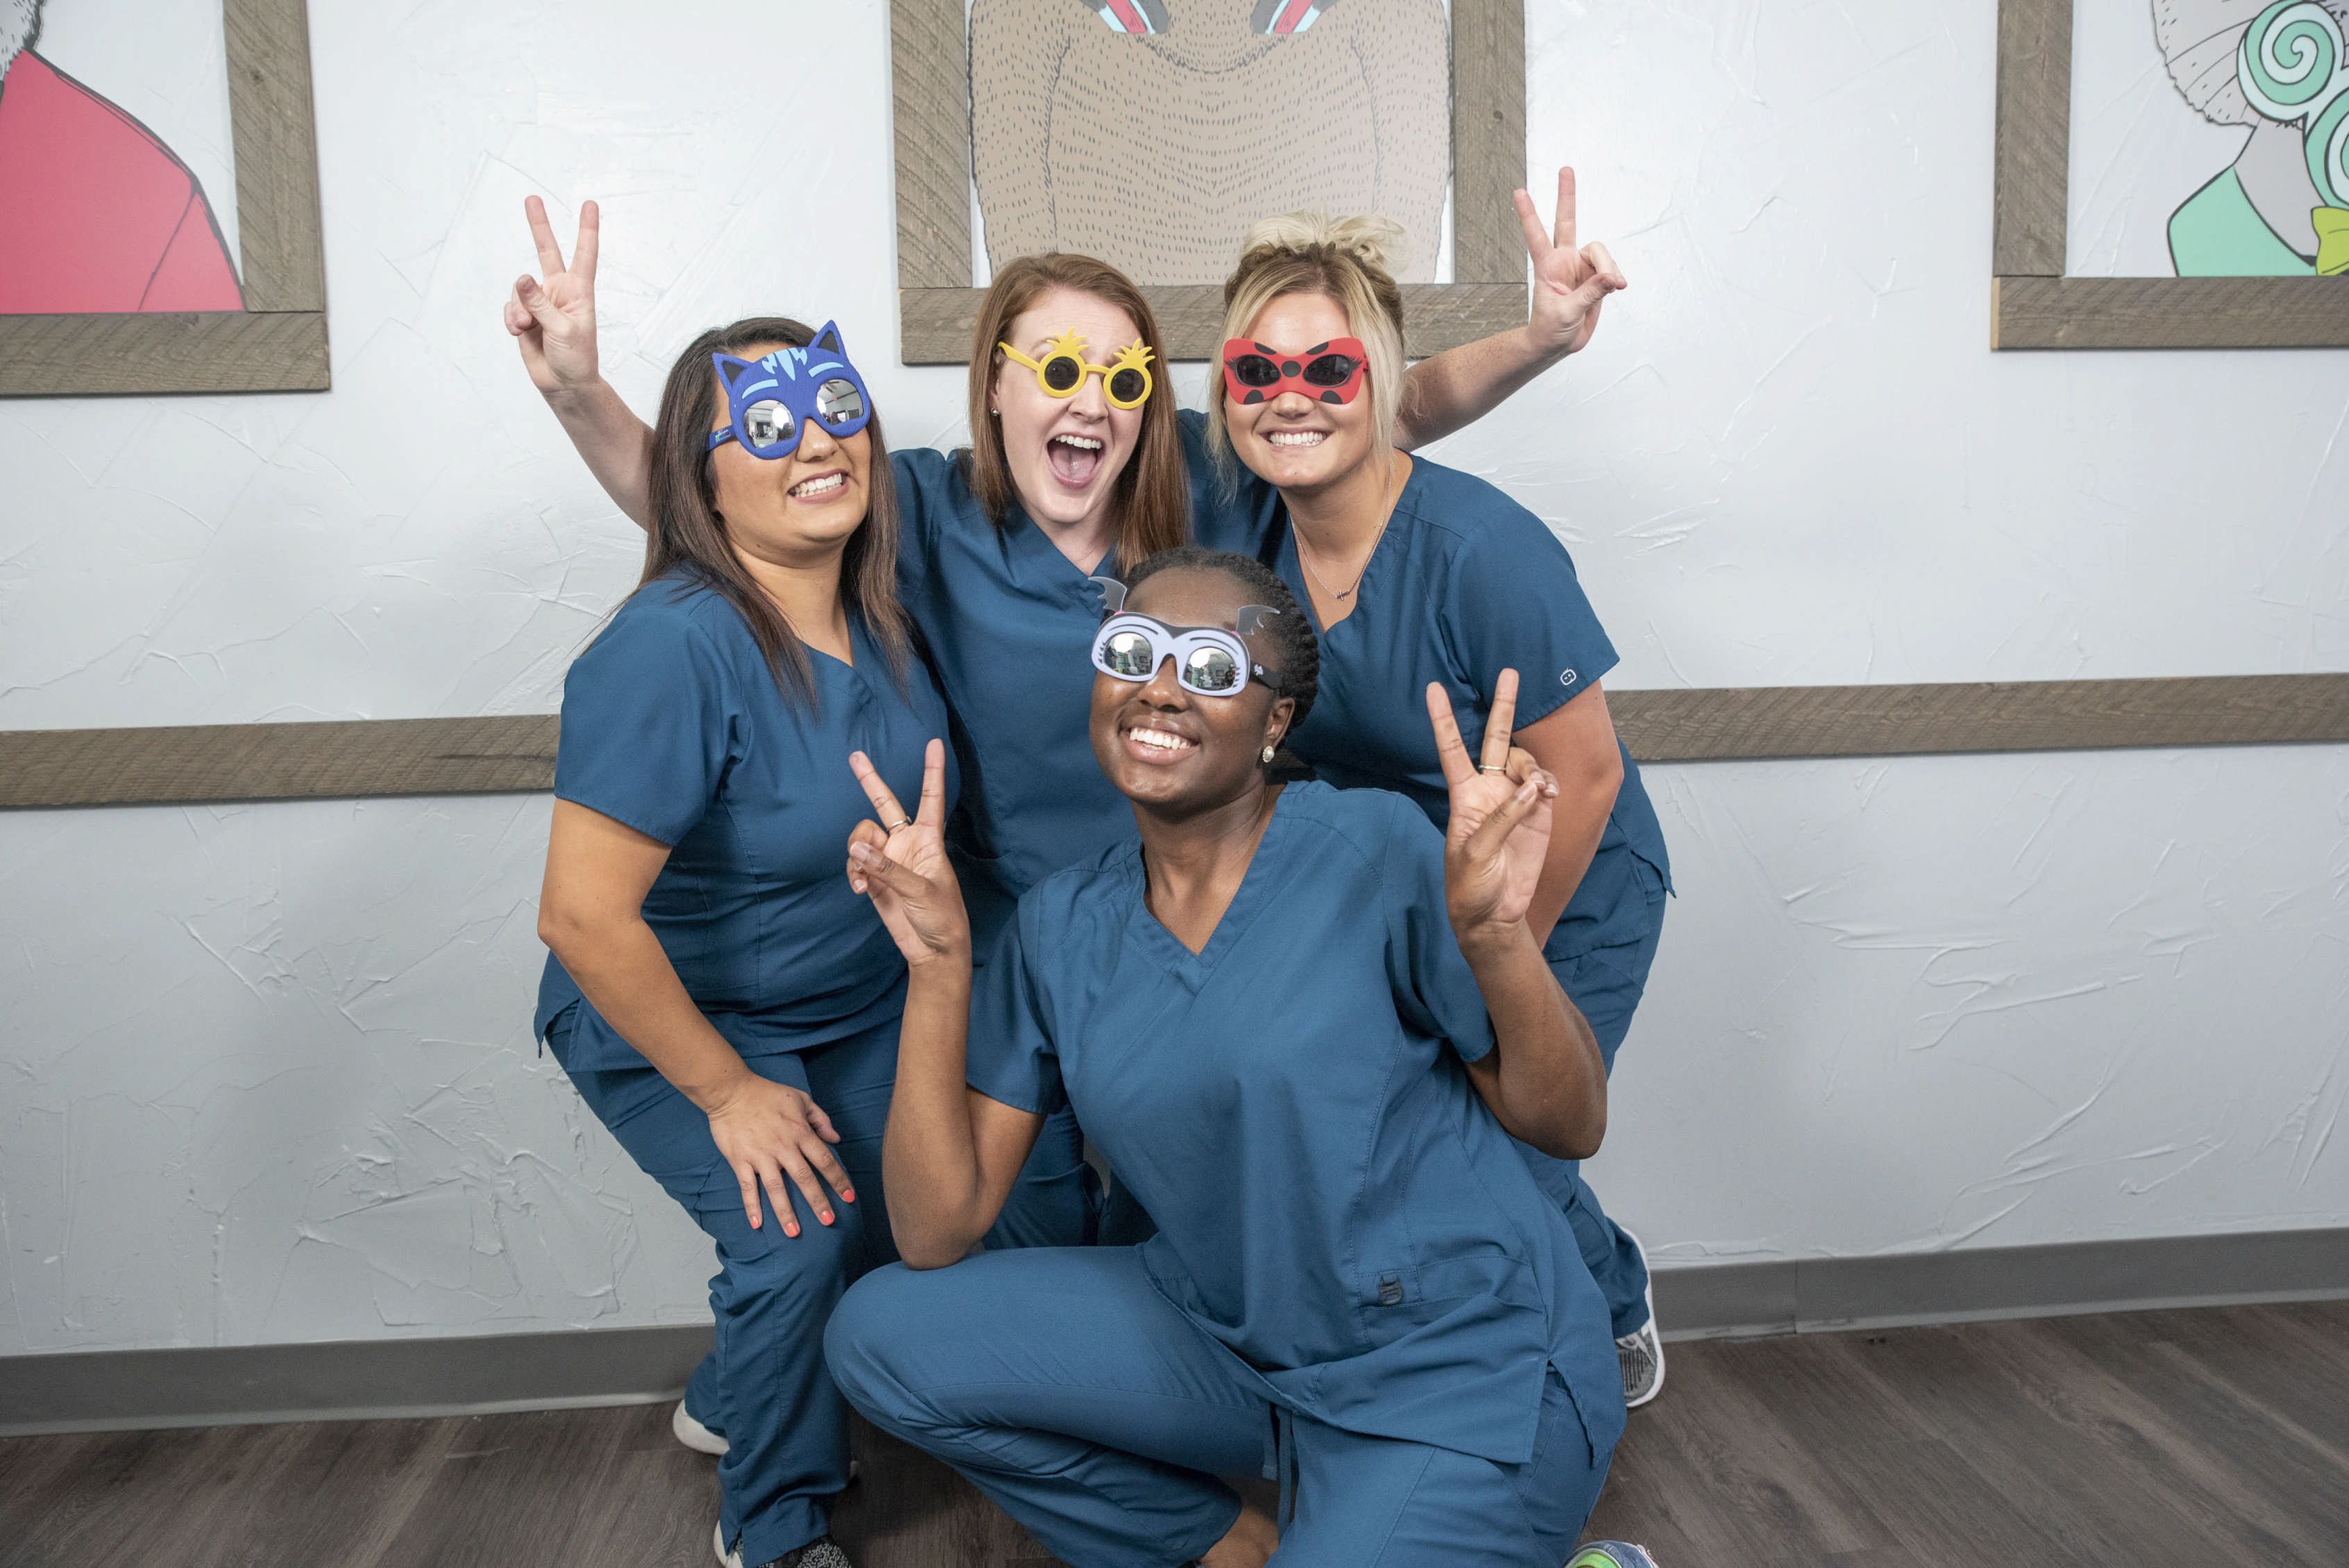 Dental team with funny props